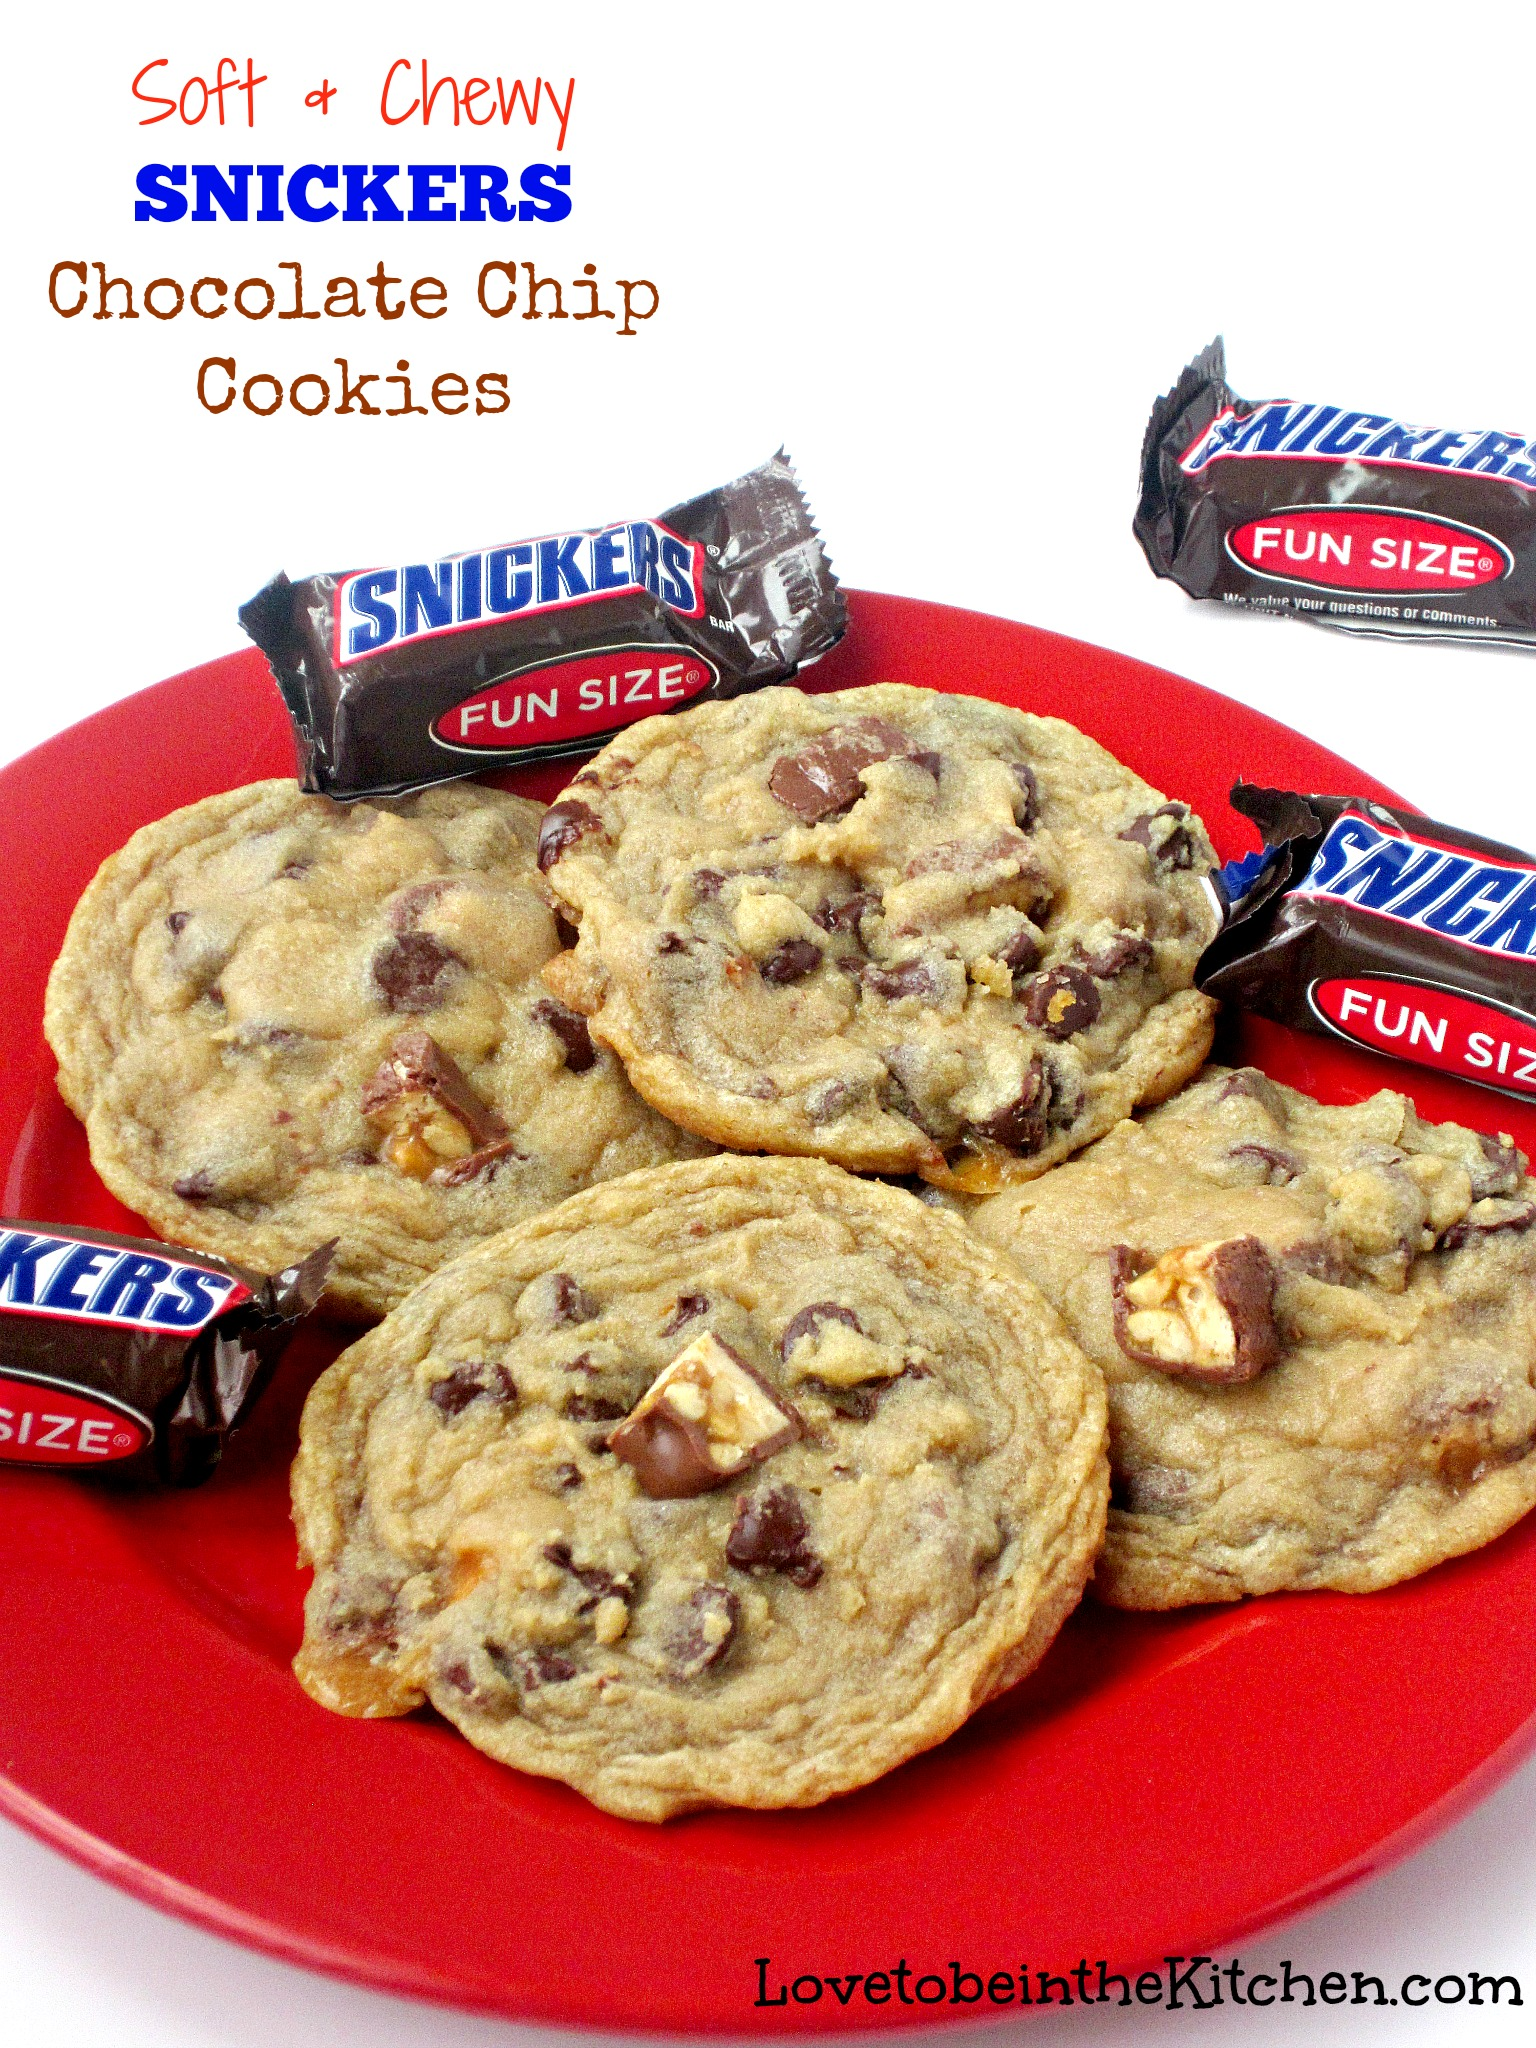 Soft and Chewy Snickers Chocolate Chip Cookies - Love to be